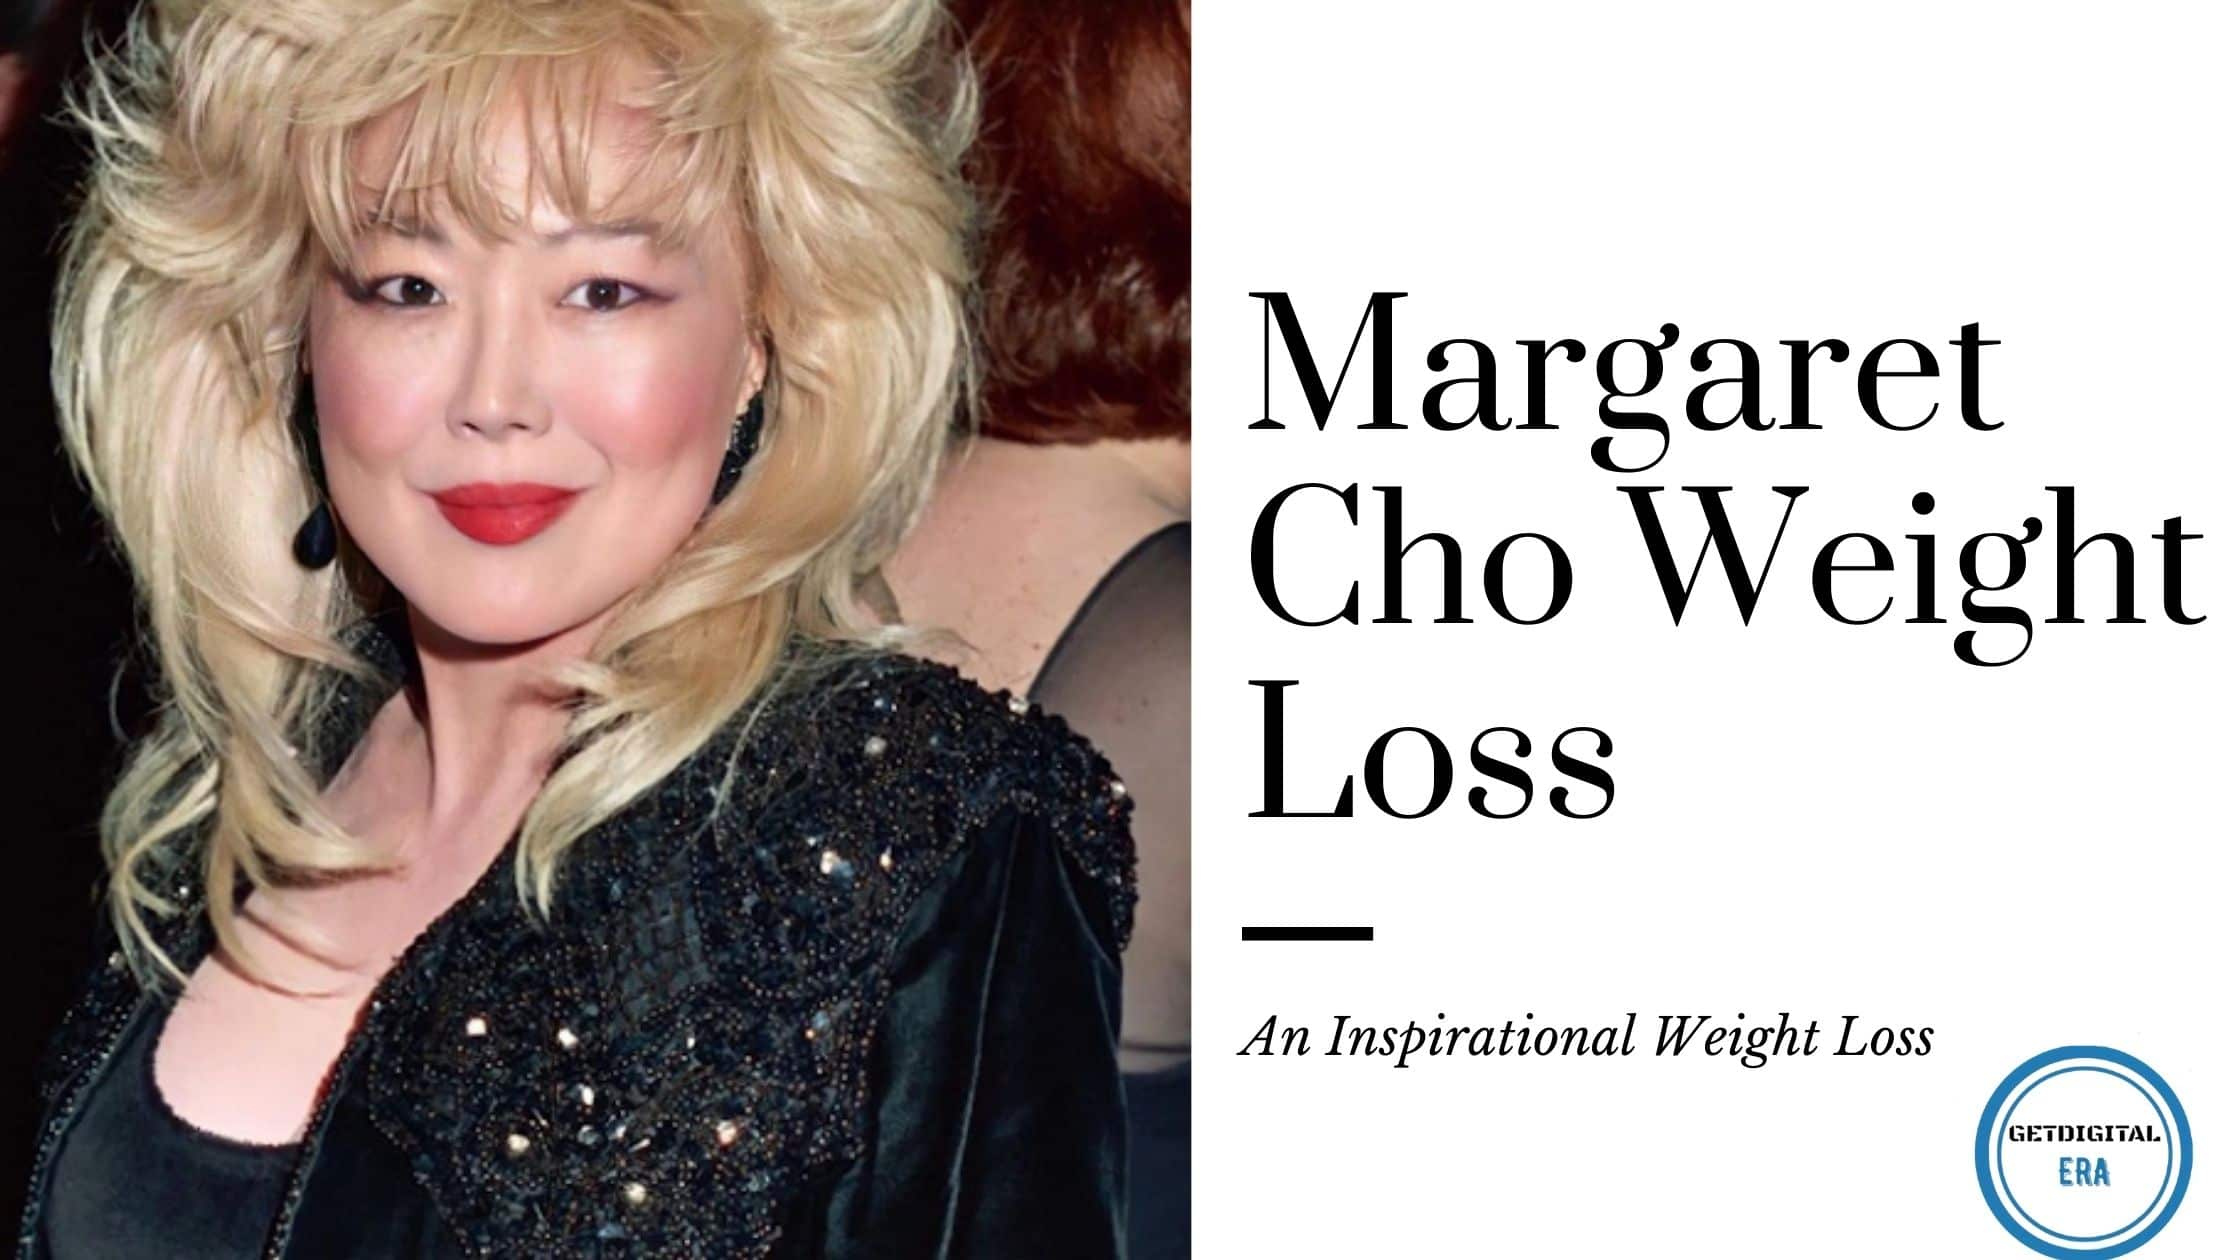 Margaret Cho Weight Loss